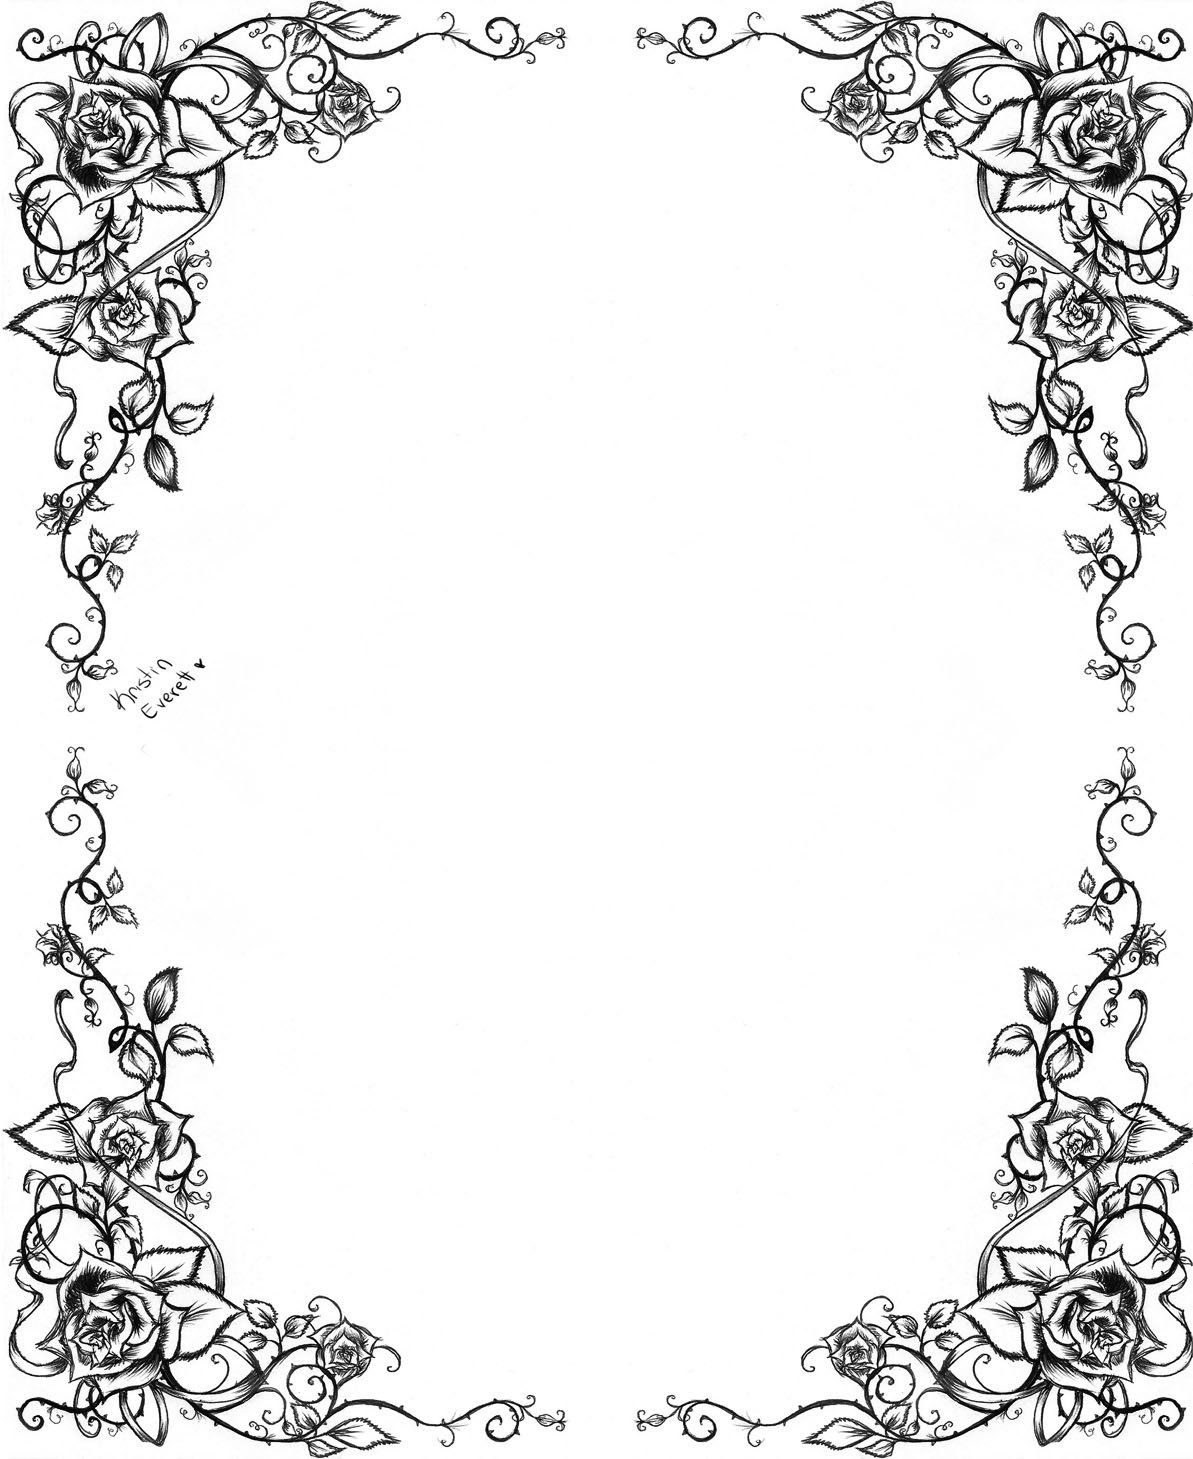 Gothic Frame Vector At Getdrawings Com Free For Personal